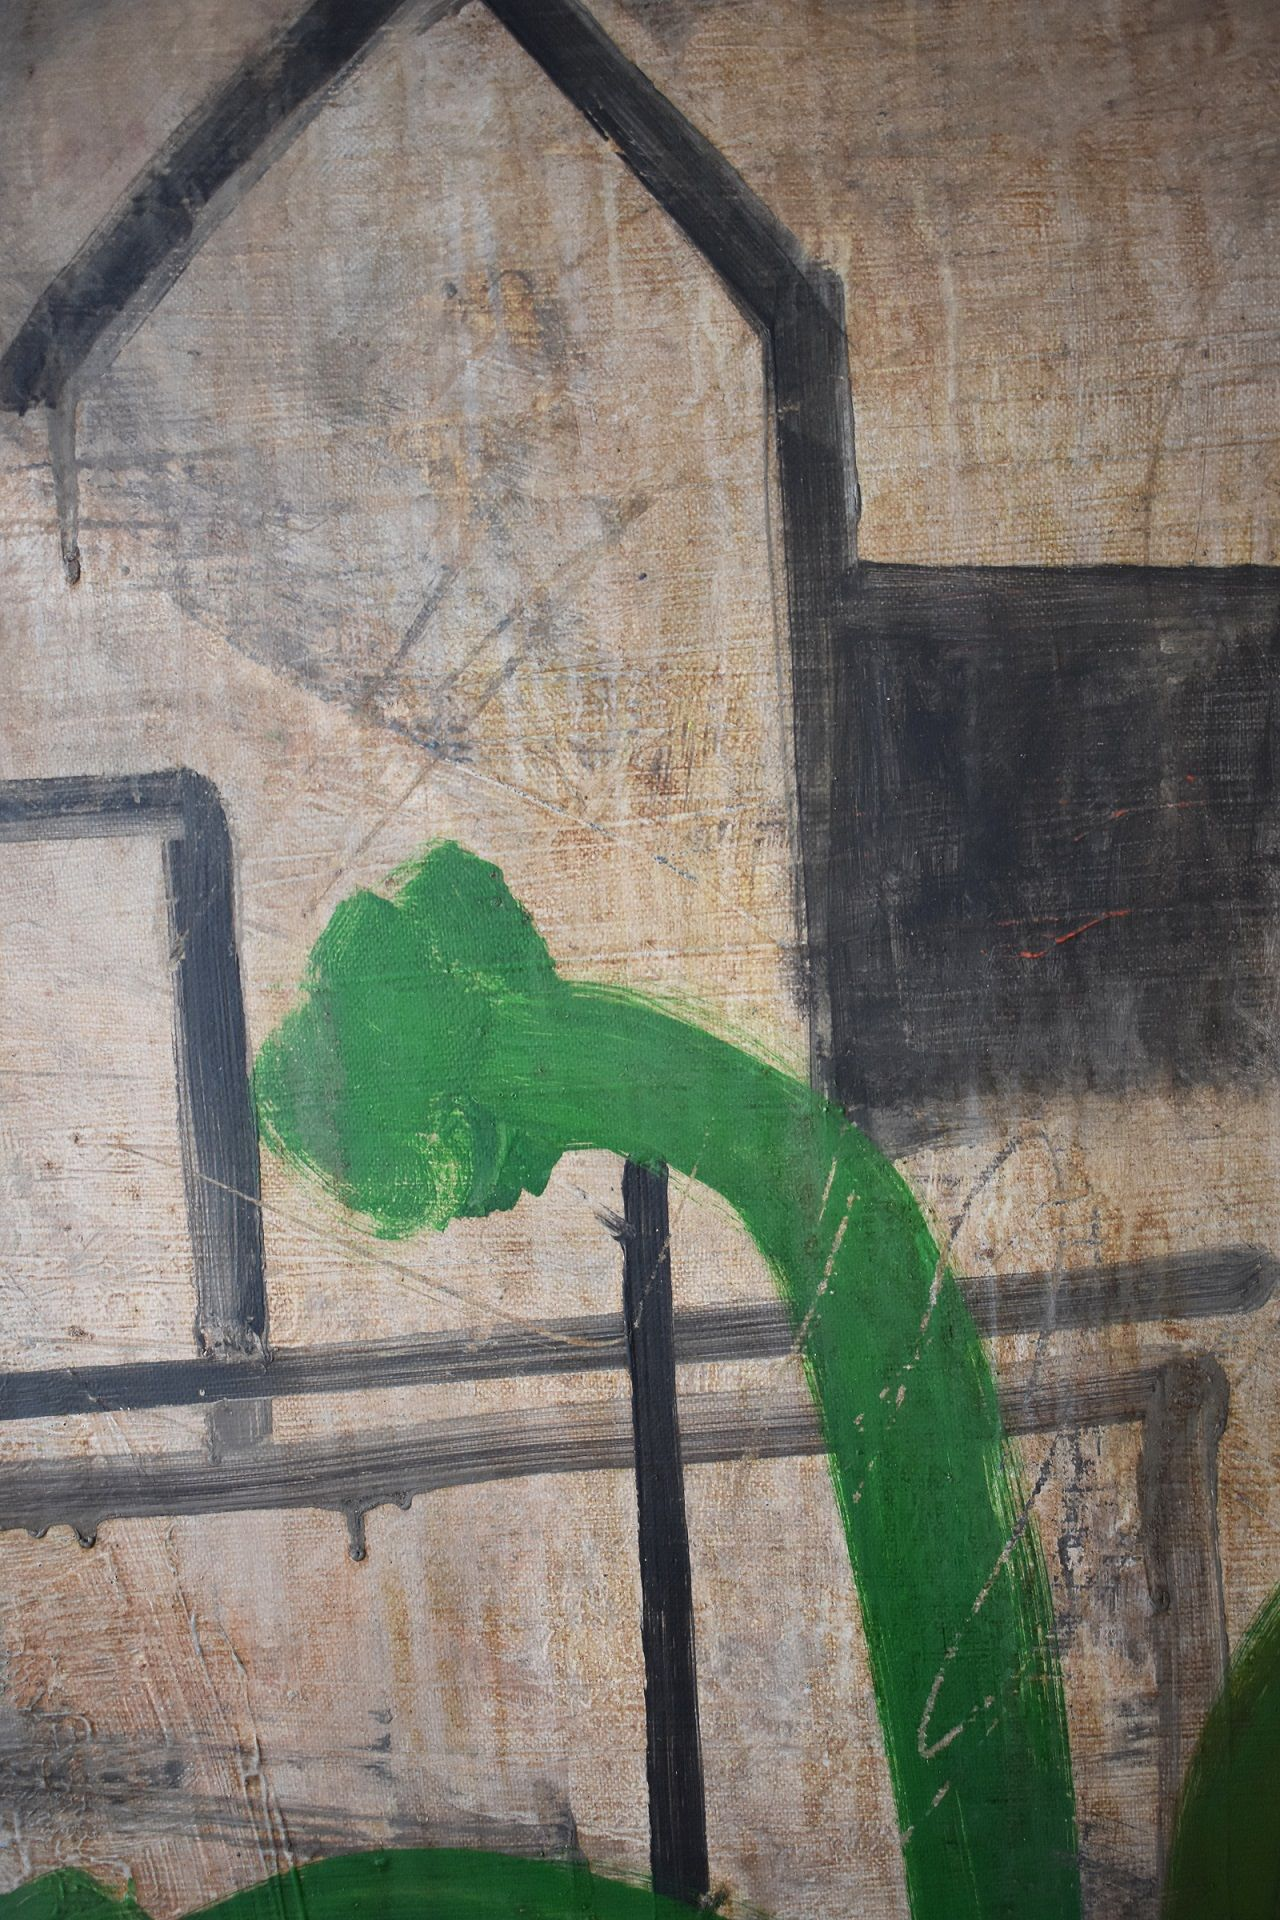 CONG I,Ramon Enrich,Painting, detail 2